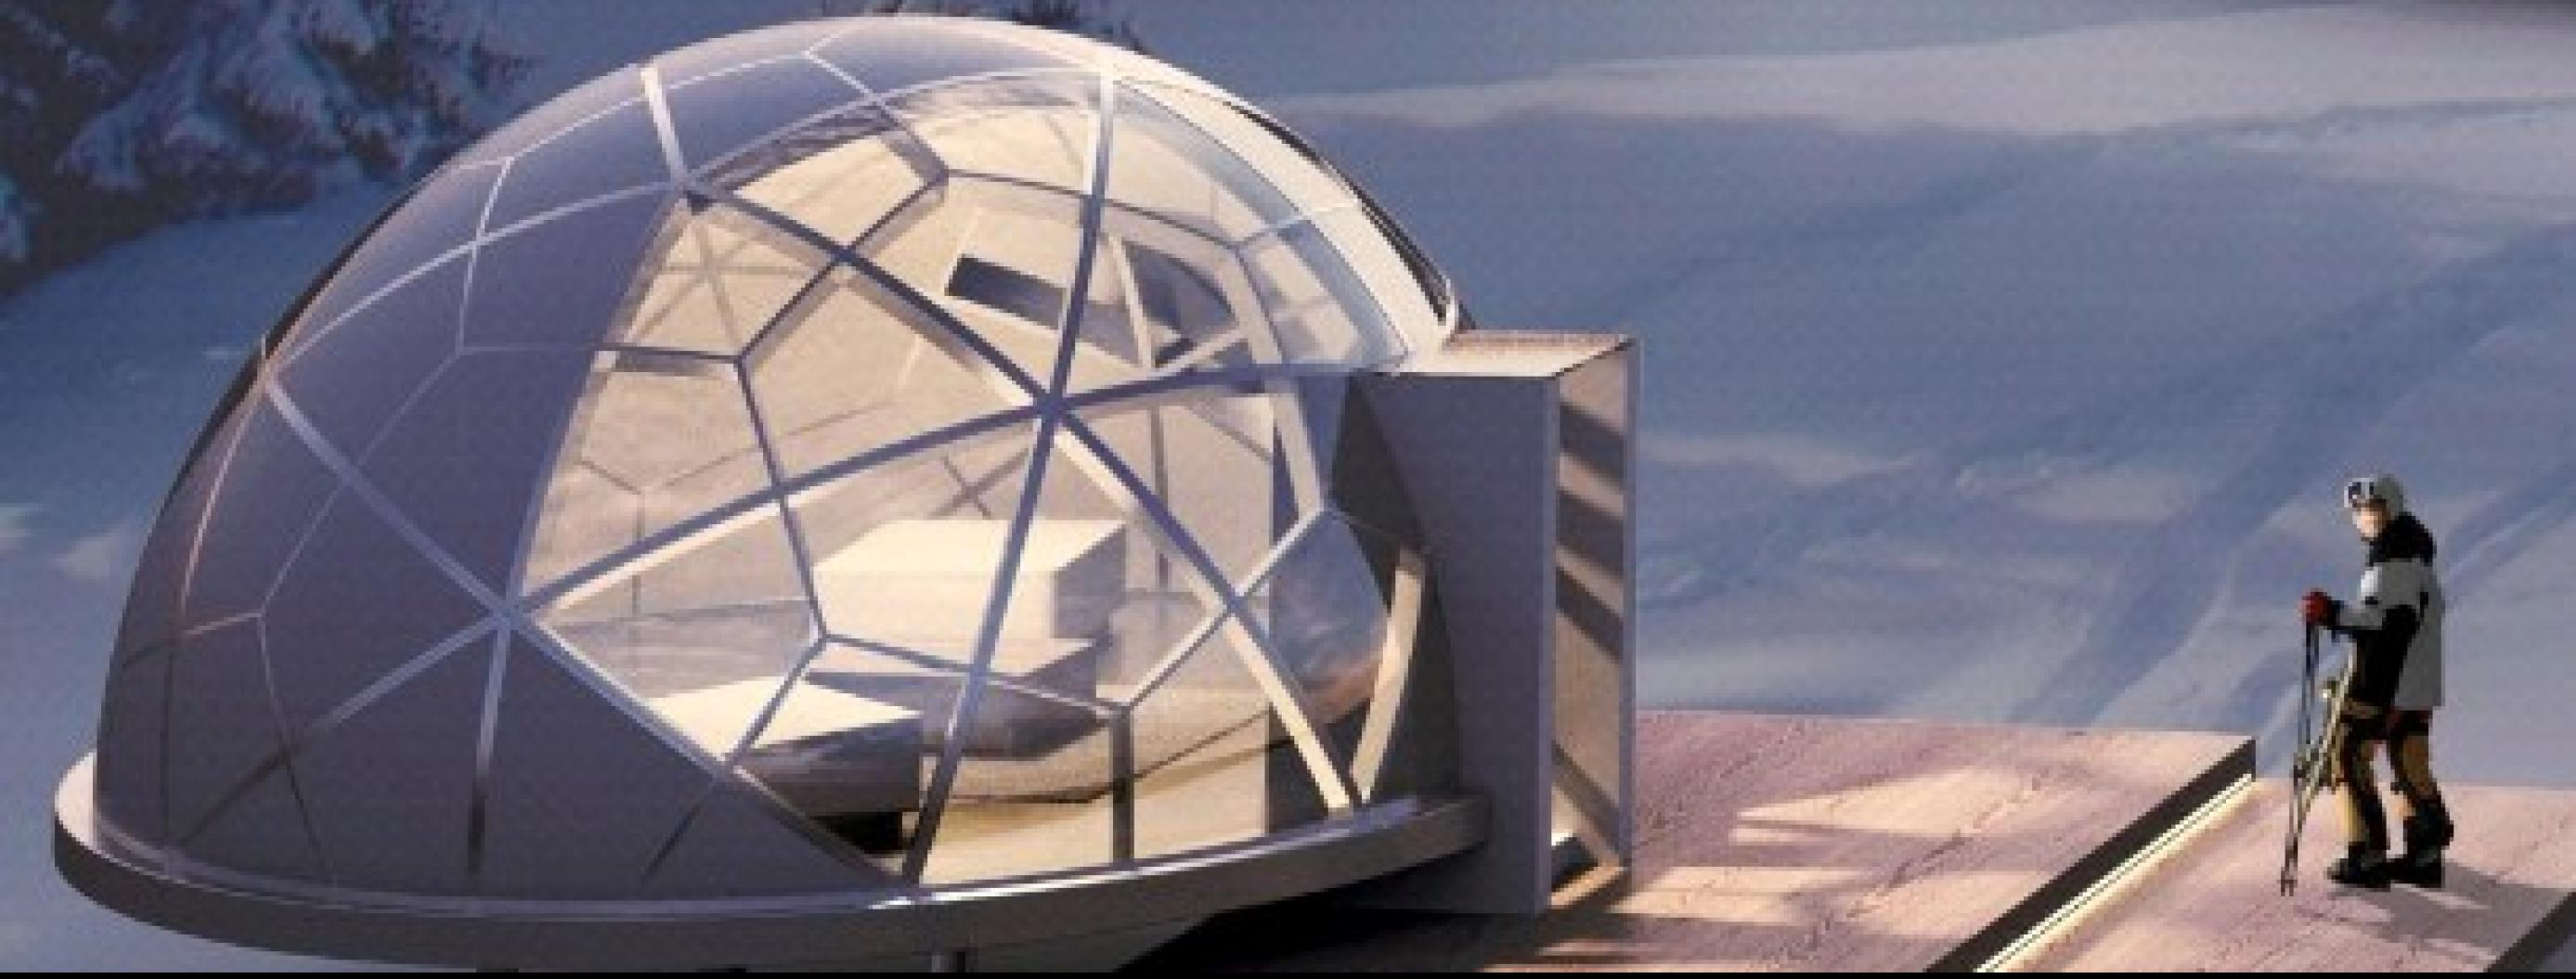 What's It Like to Live Inside a Dome?